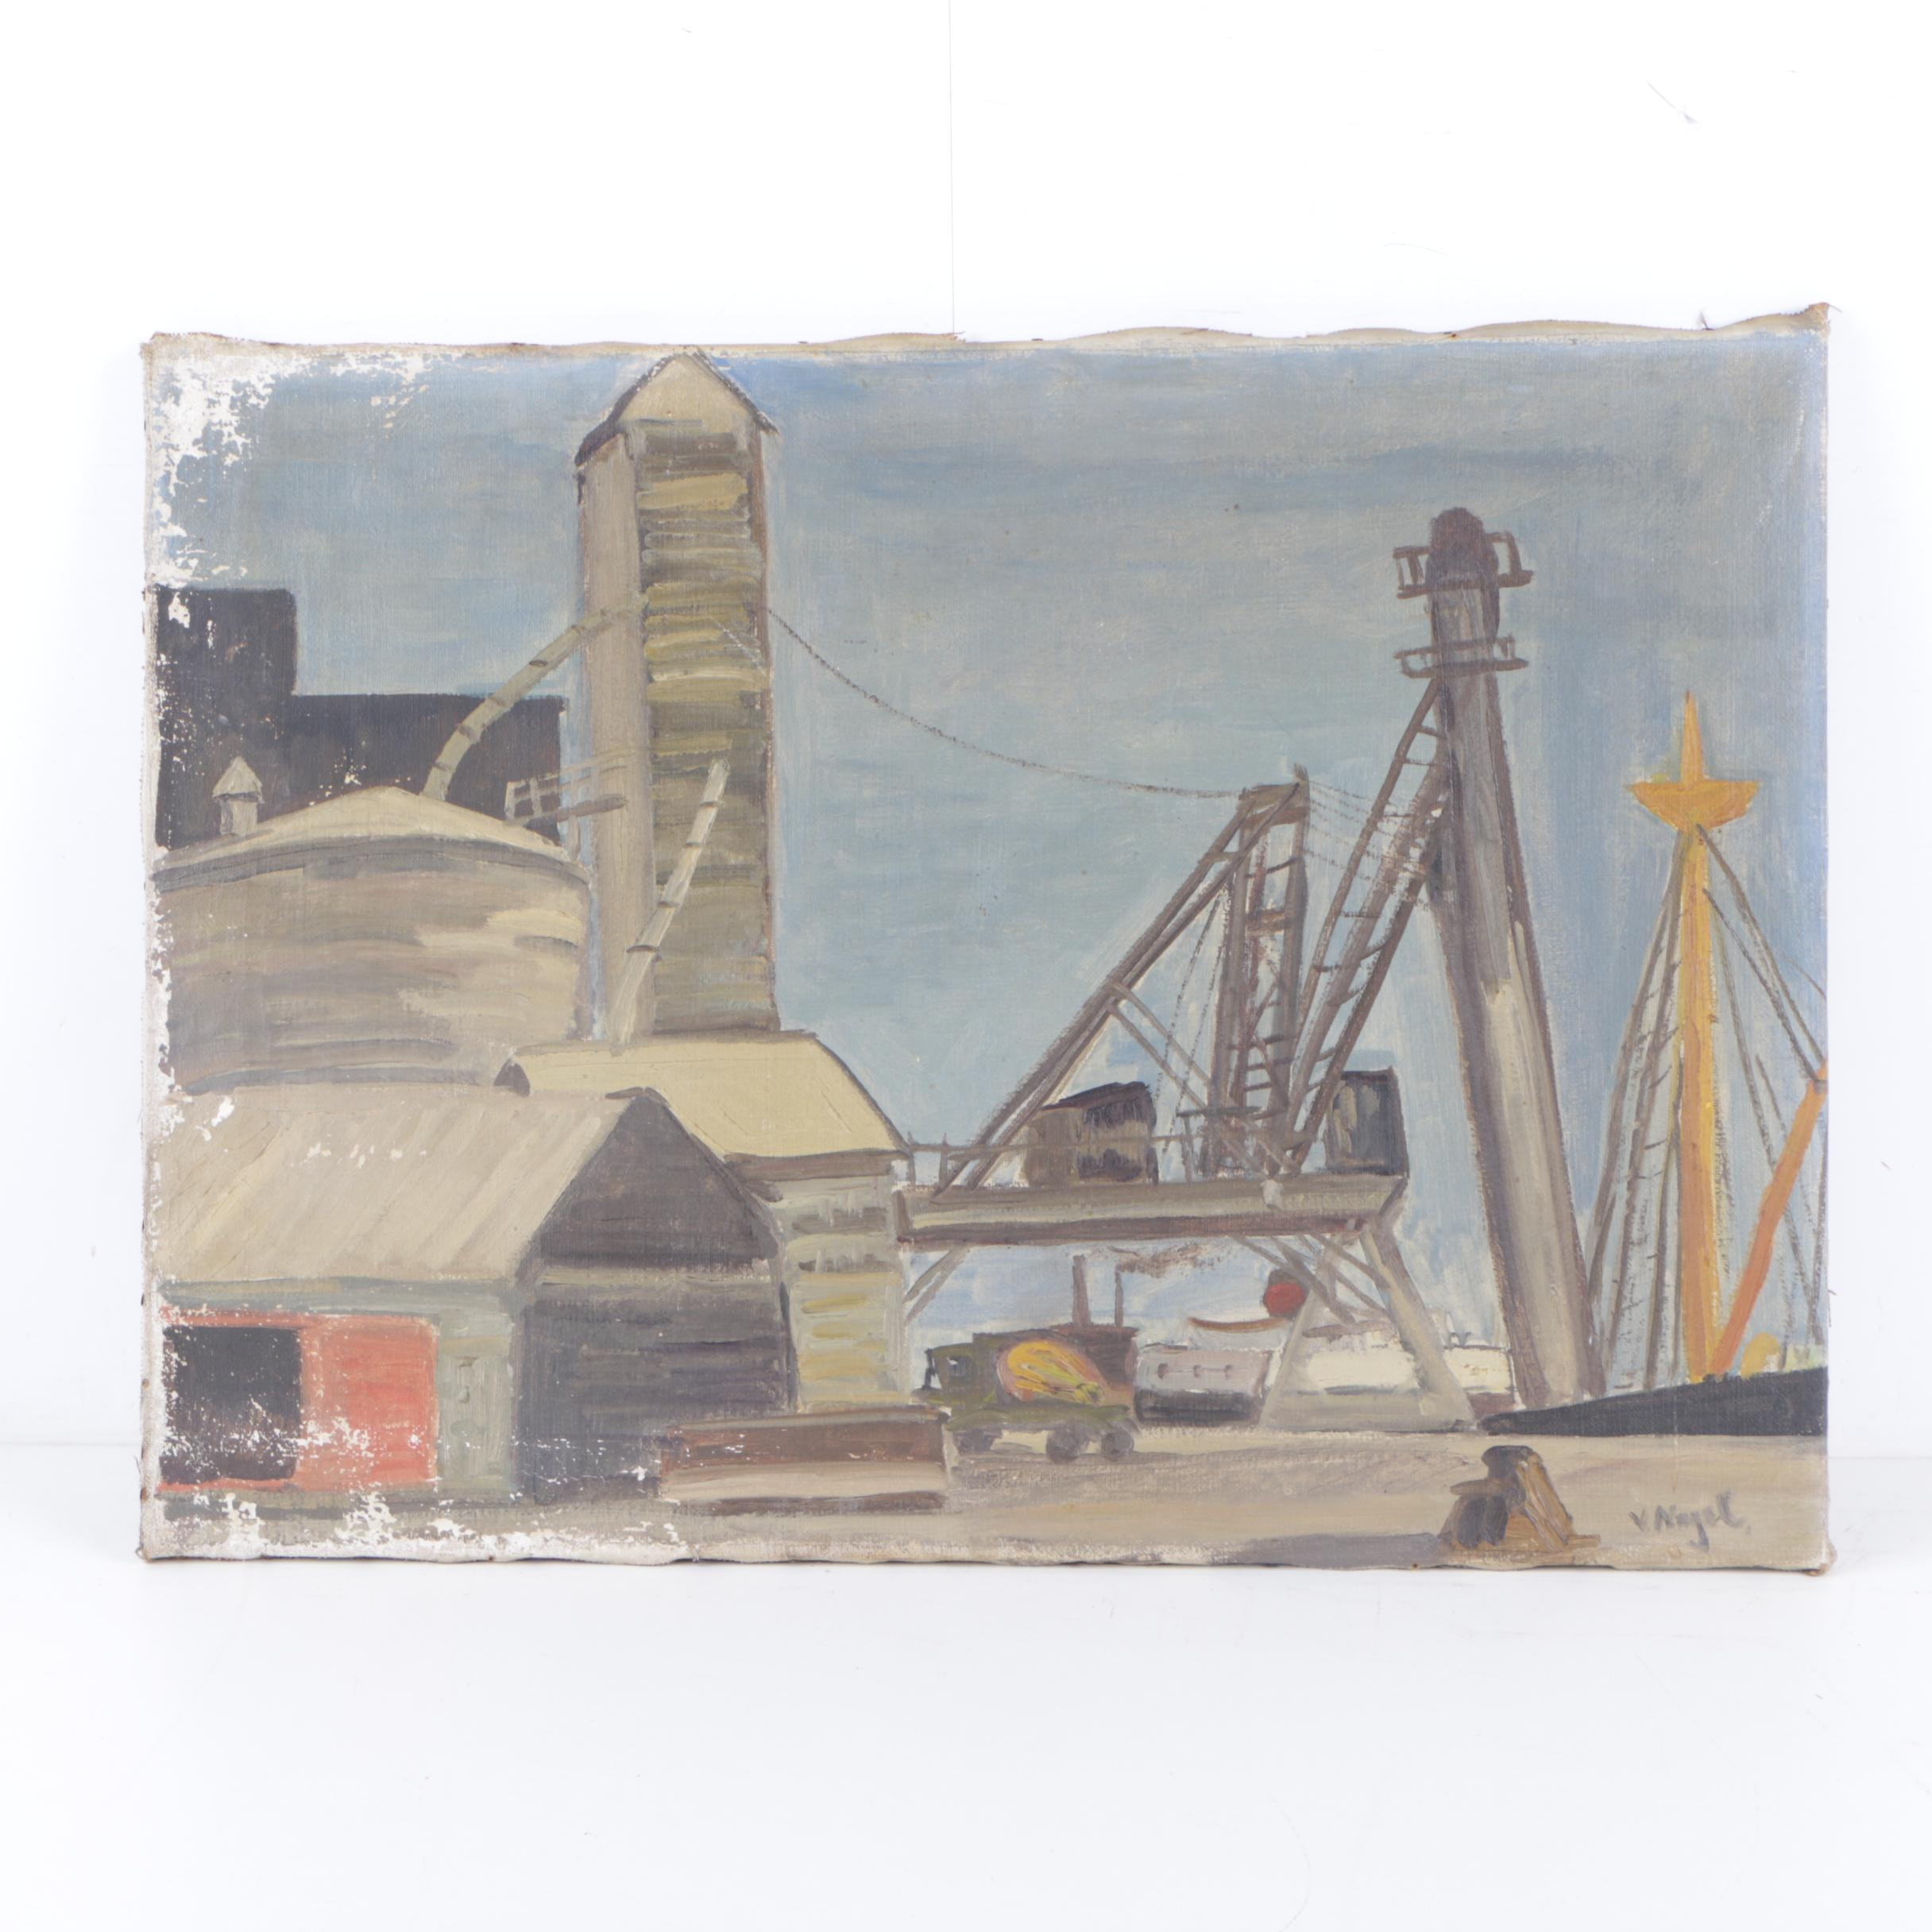 Valentin Nagel Oil Painting of a Industrial landscape